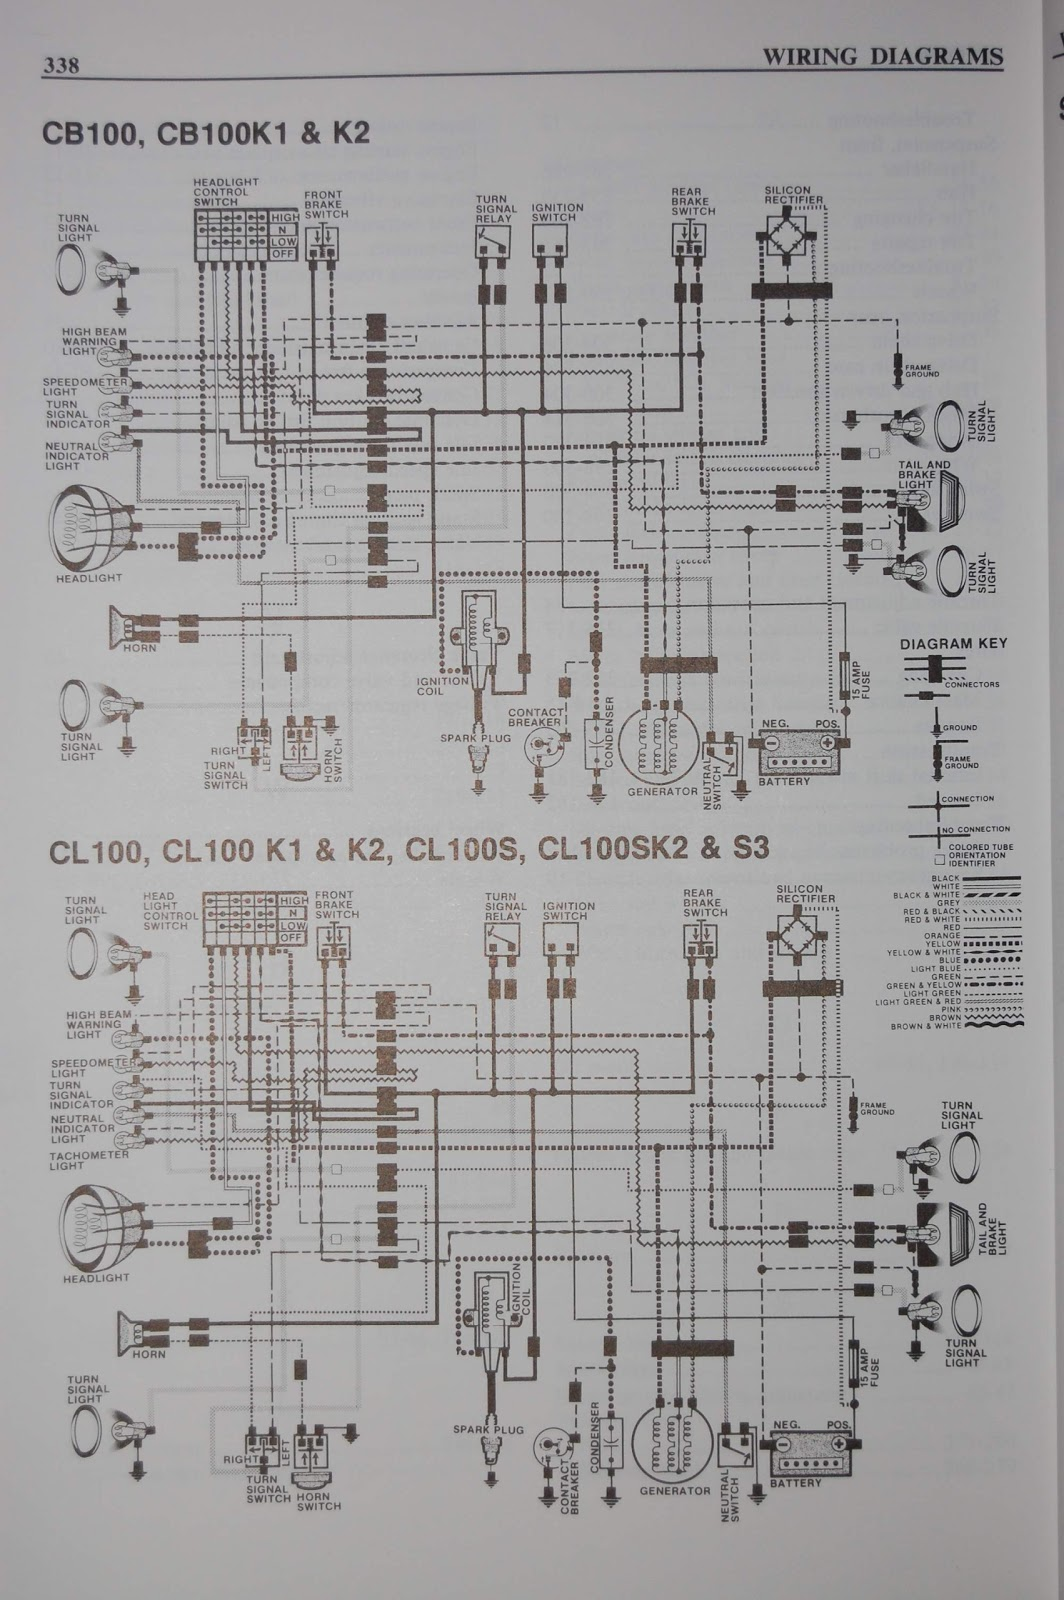 CB100+CL100+wiring+diagram?resize=665%2C1000 1974 honda cb450 wiring diagram wiring diagram 1974 honda cb450 wiring harness at fashall.co